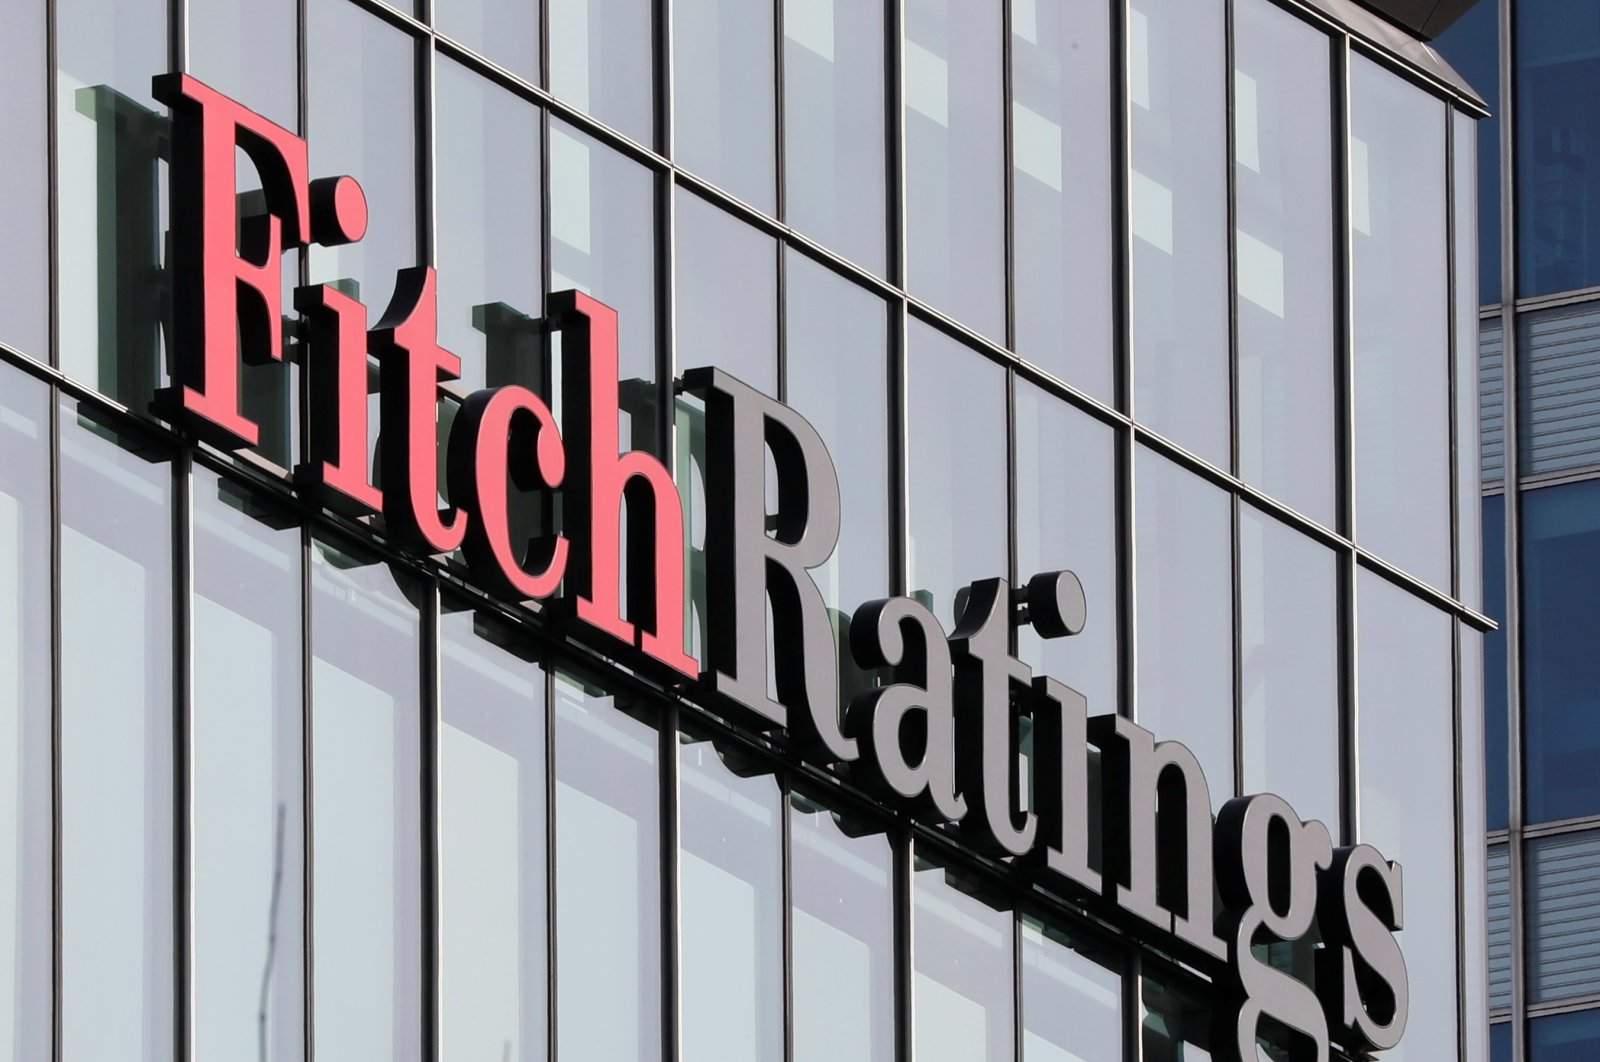 The Fitch Ratings logo is seen at their offices in the Canary Wharf financial district in London, Britain, March 3, 2016. (Reuters Photo)